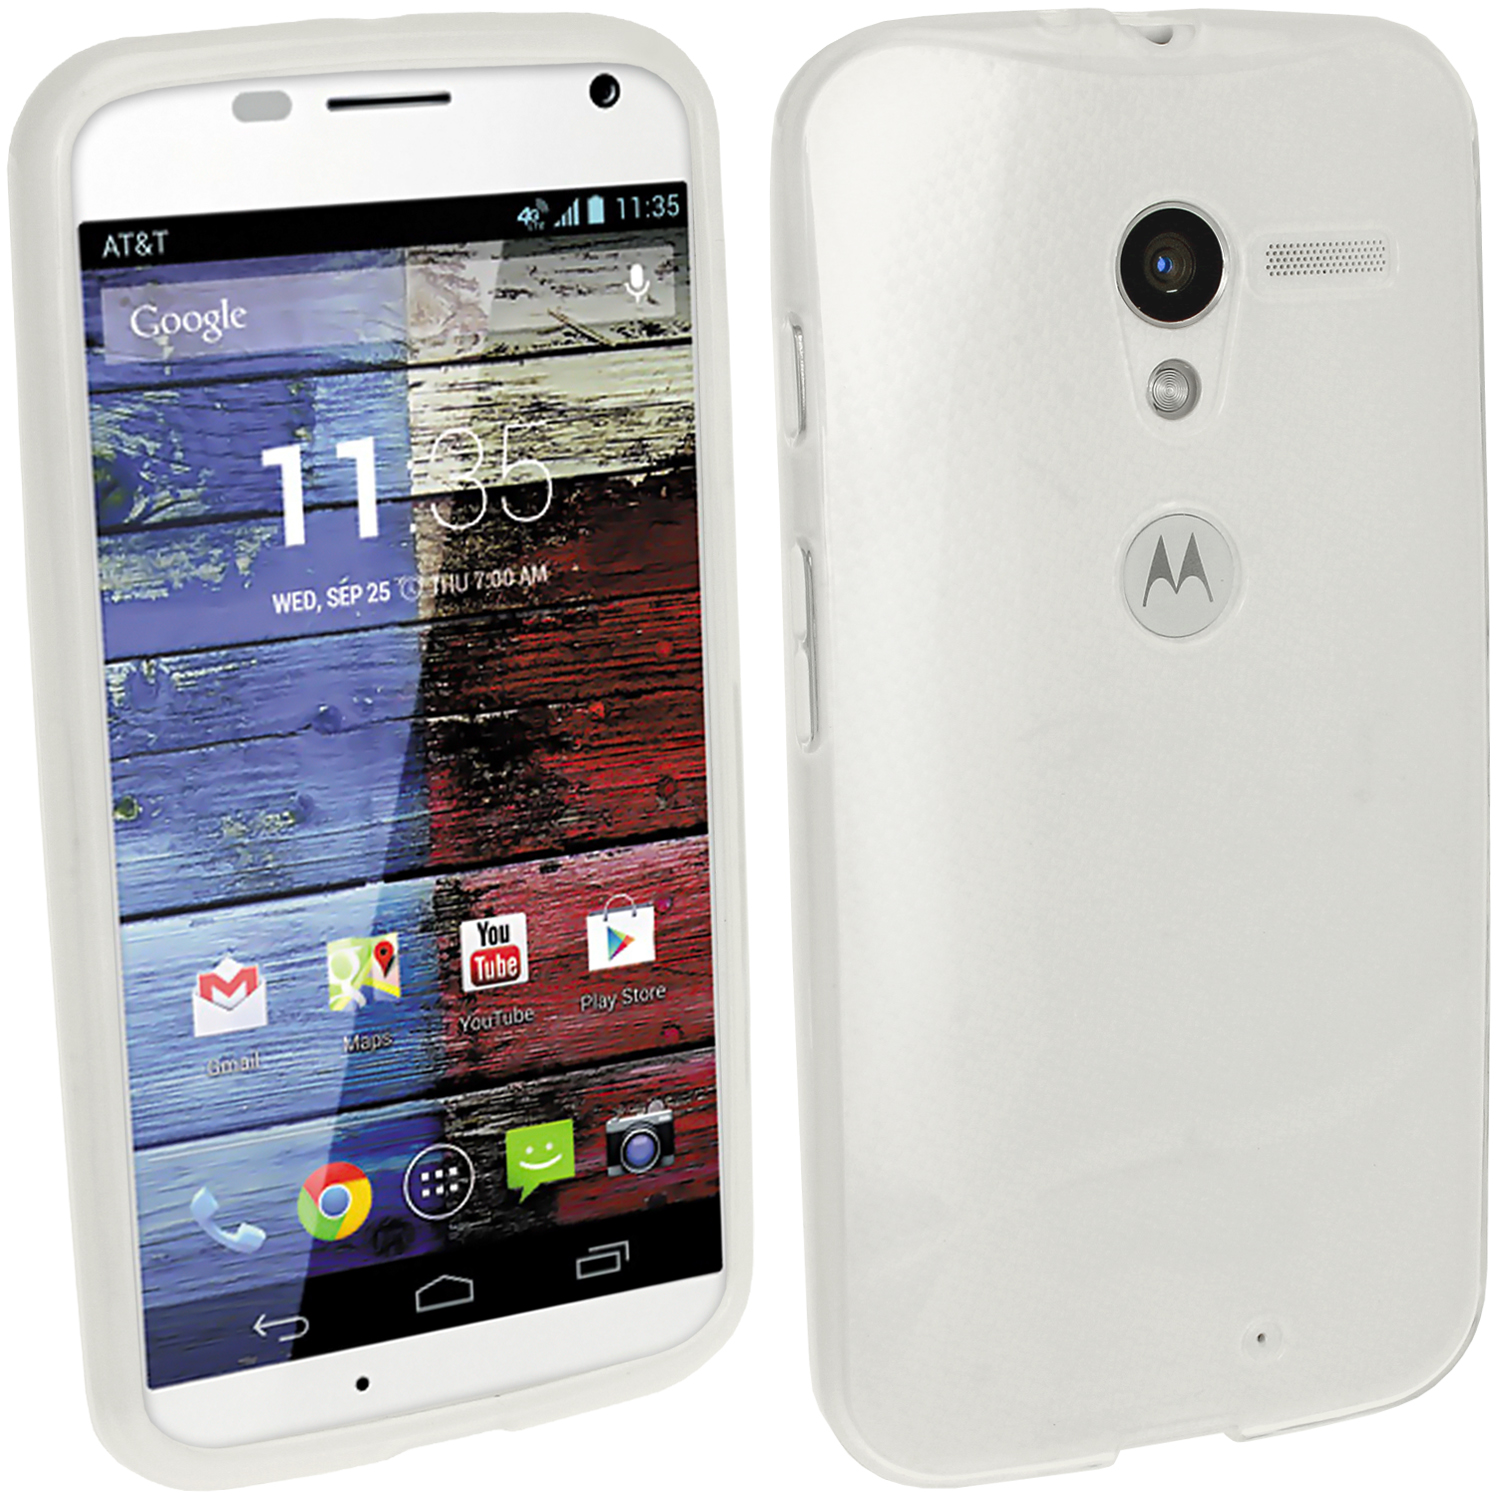 iGadgitz Frosted Clear Glossy Gel Case for Motorola Moto X 4.2 Jelly Bean Smartphone + Screen Protector